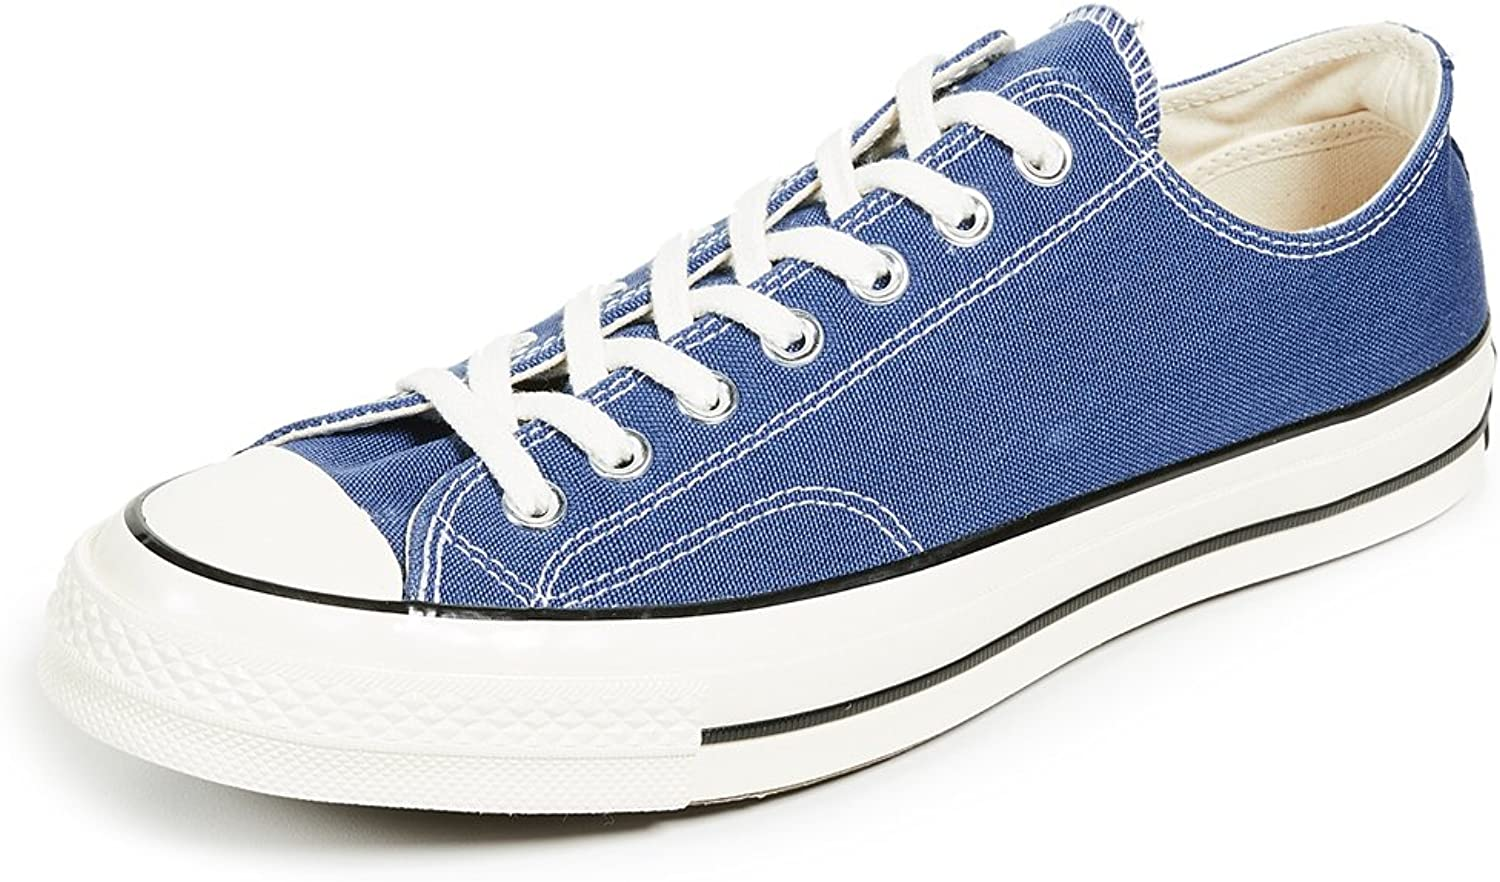 CONVERSE unisex shoes low sneakers 162064C CHUCK 70 OX size 44.5 bluee